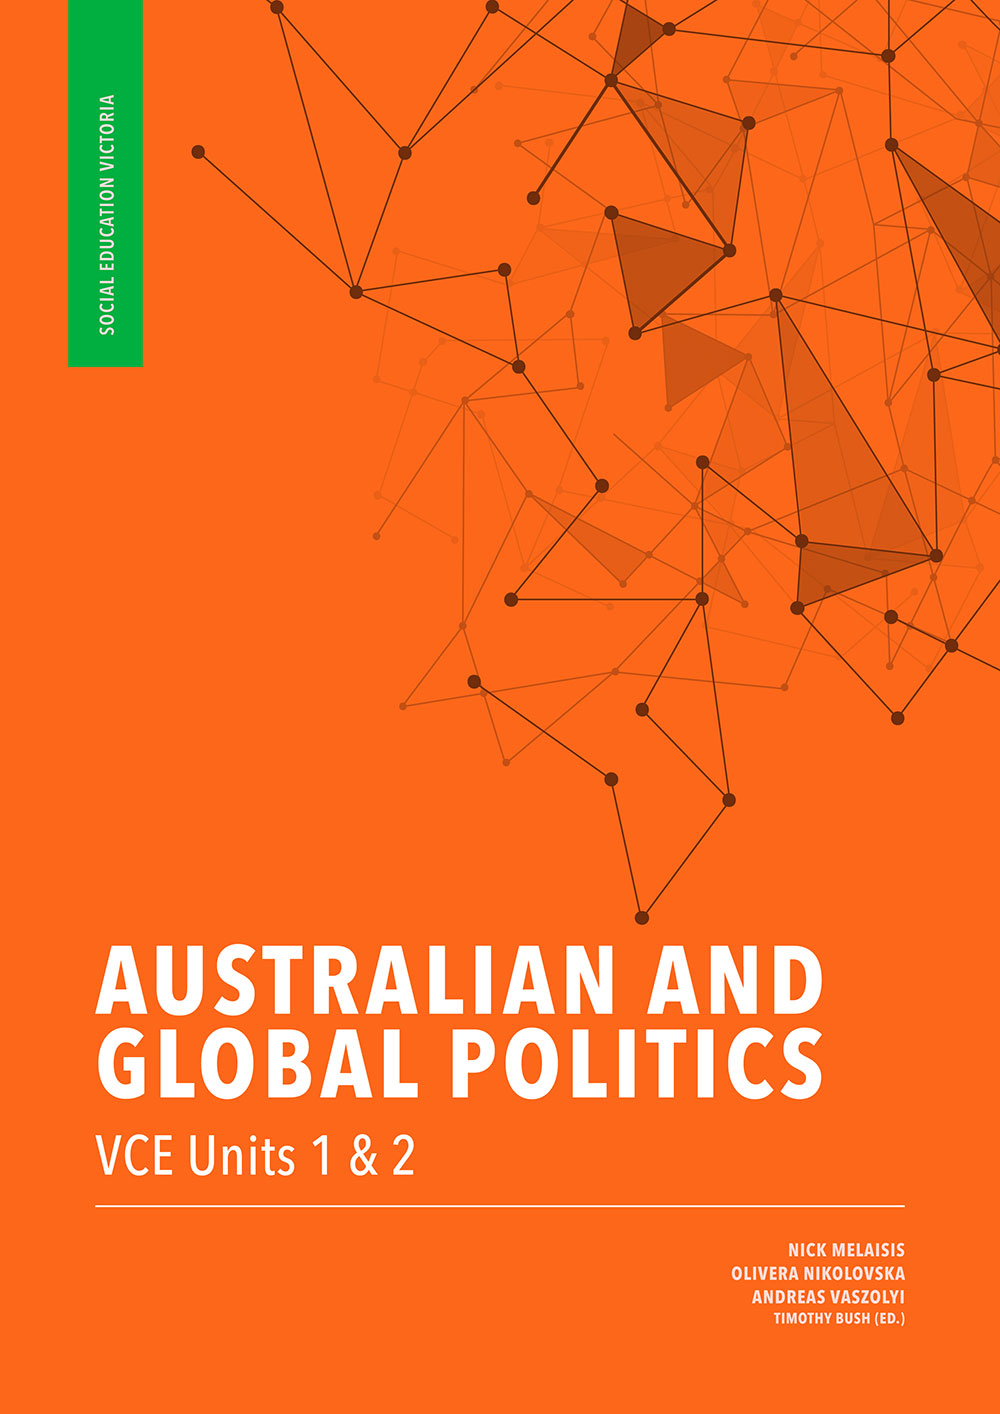 Australian and Global Politics VCE Units 1 & 2